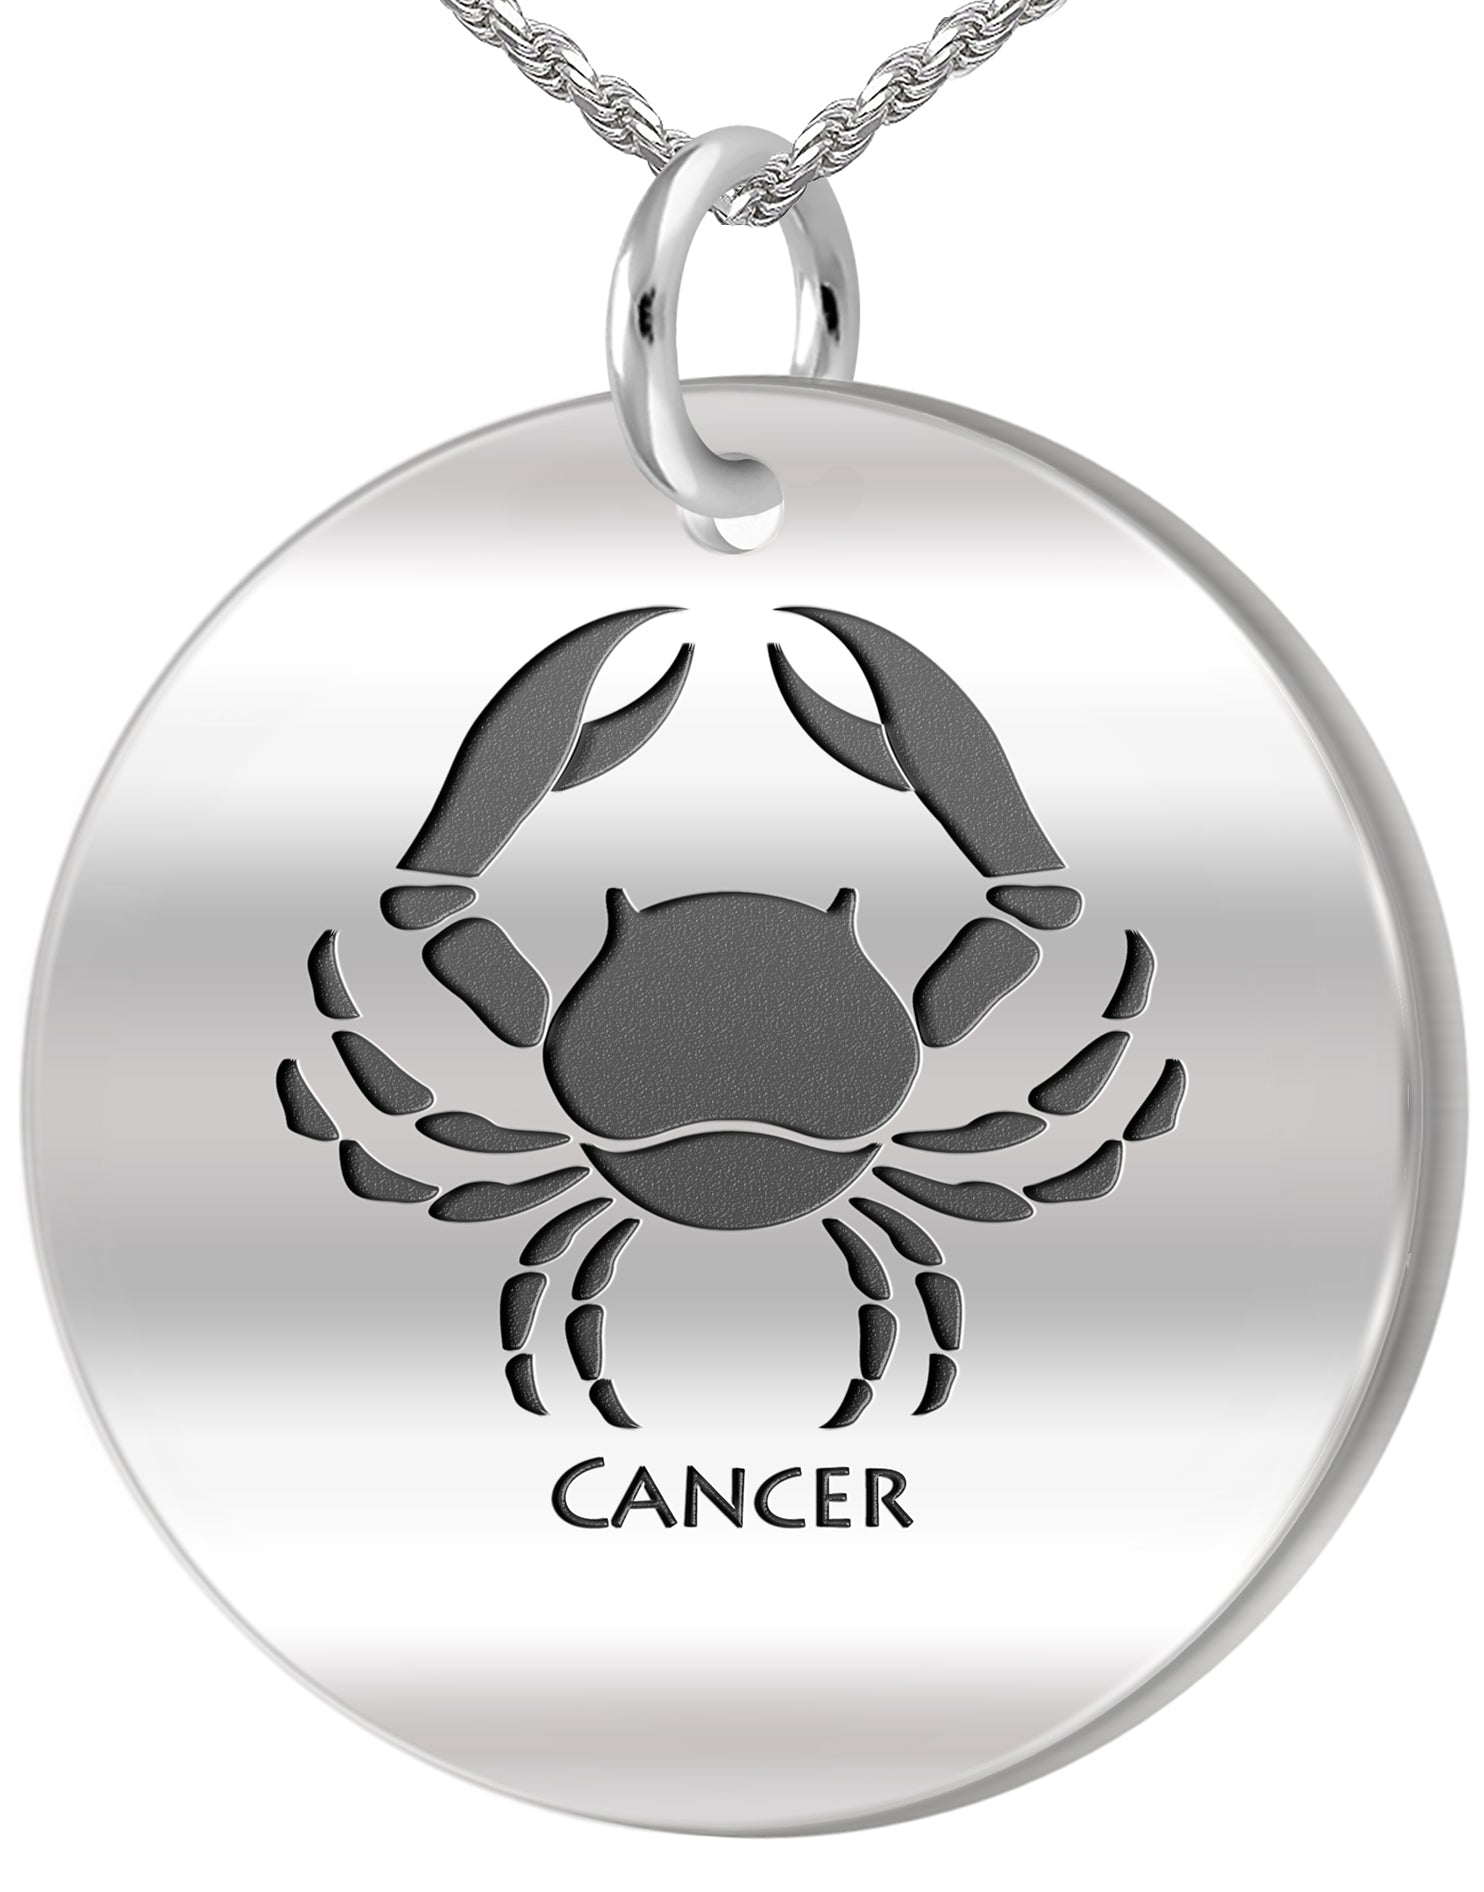 Zodiac Pendant Necklace - Cancer Crab Necklace In Silver